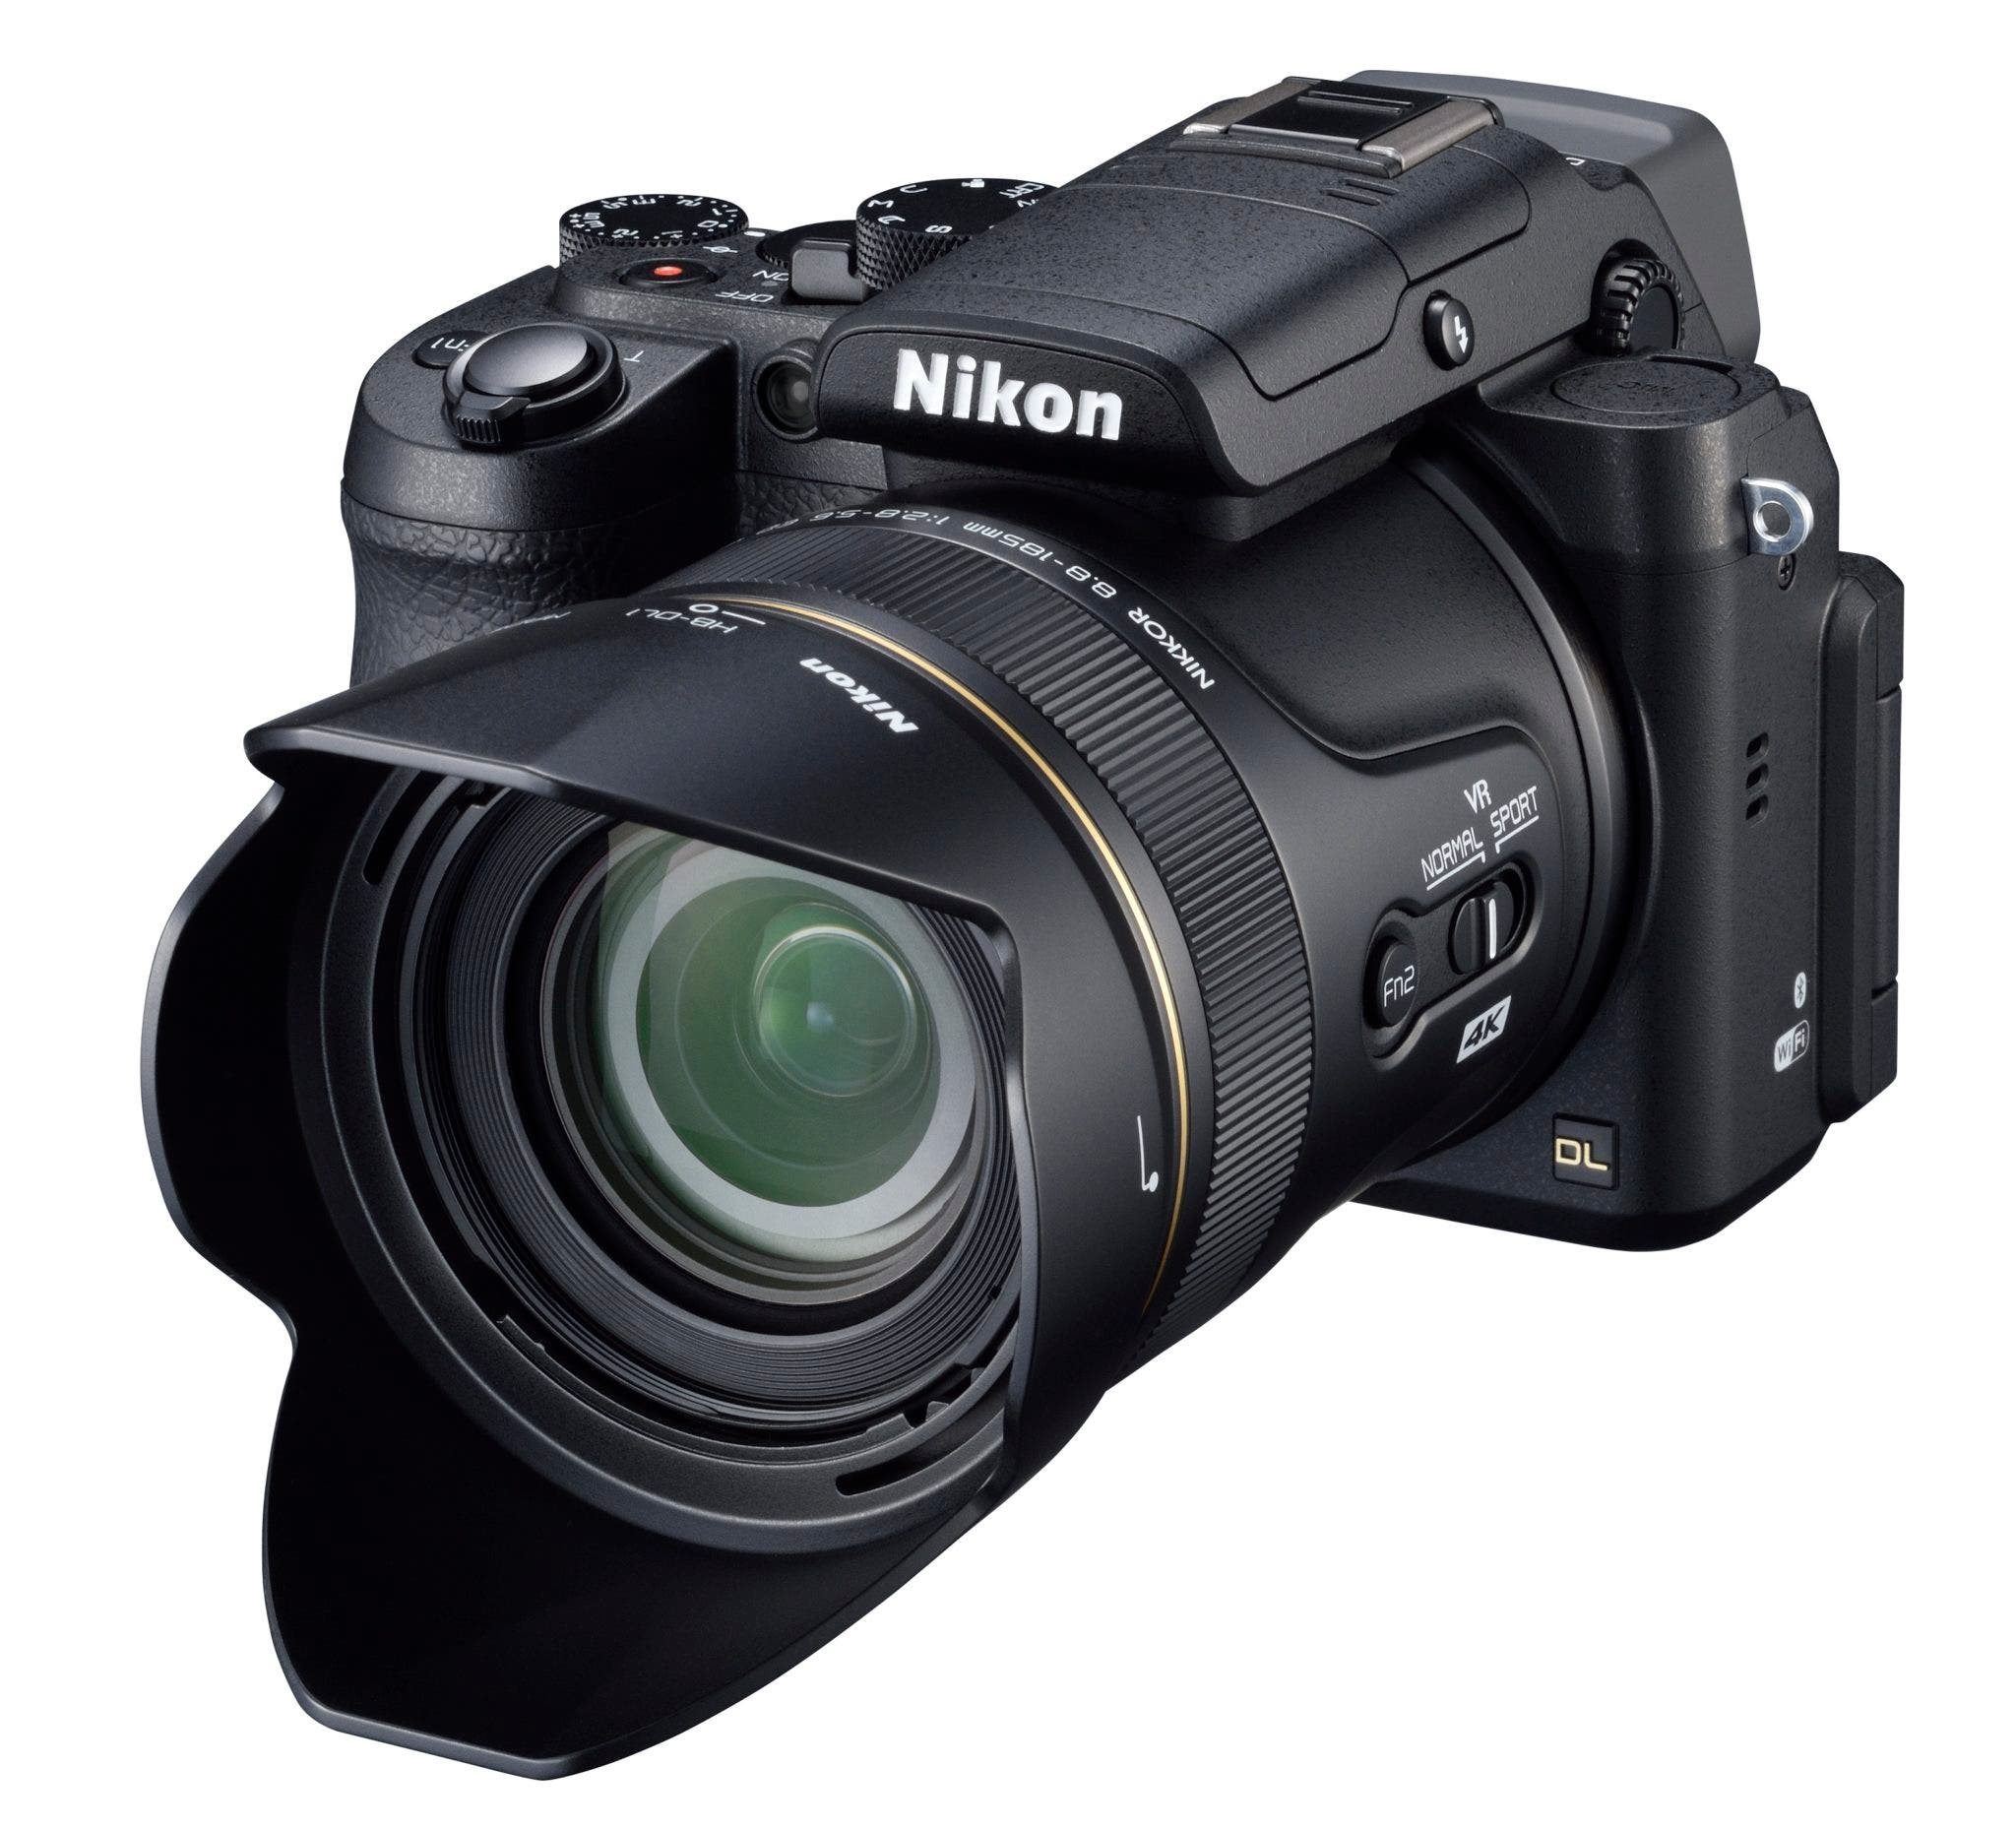 Nikon's DL Point and Shoots Cater to the Higher End Crowd